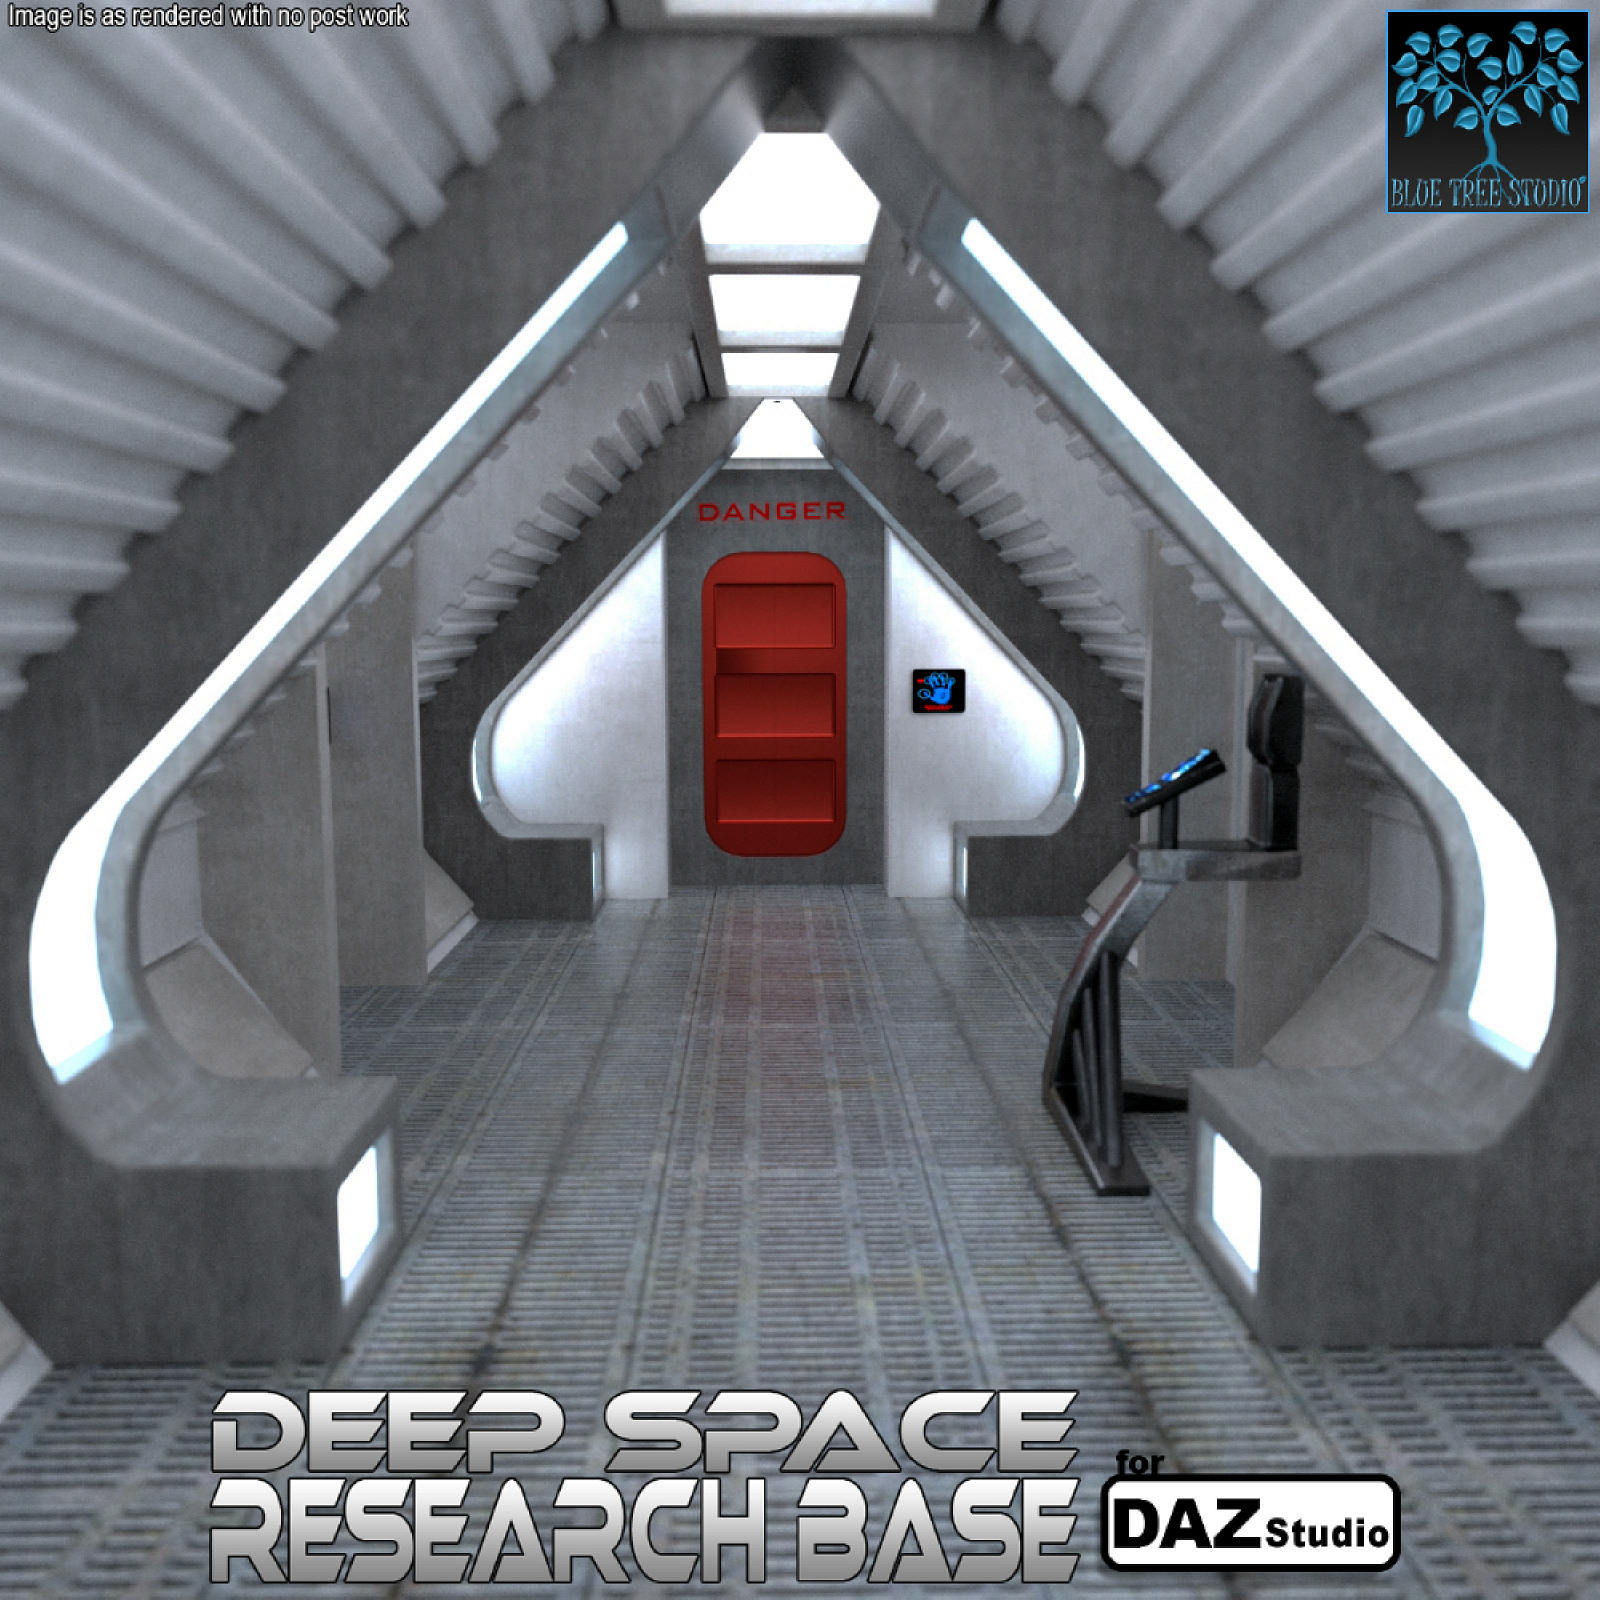 Deep Space Research Base for Daz